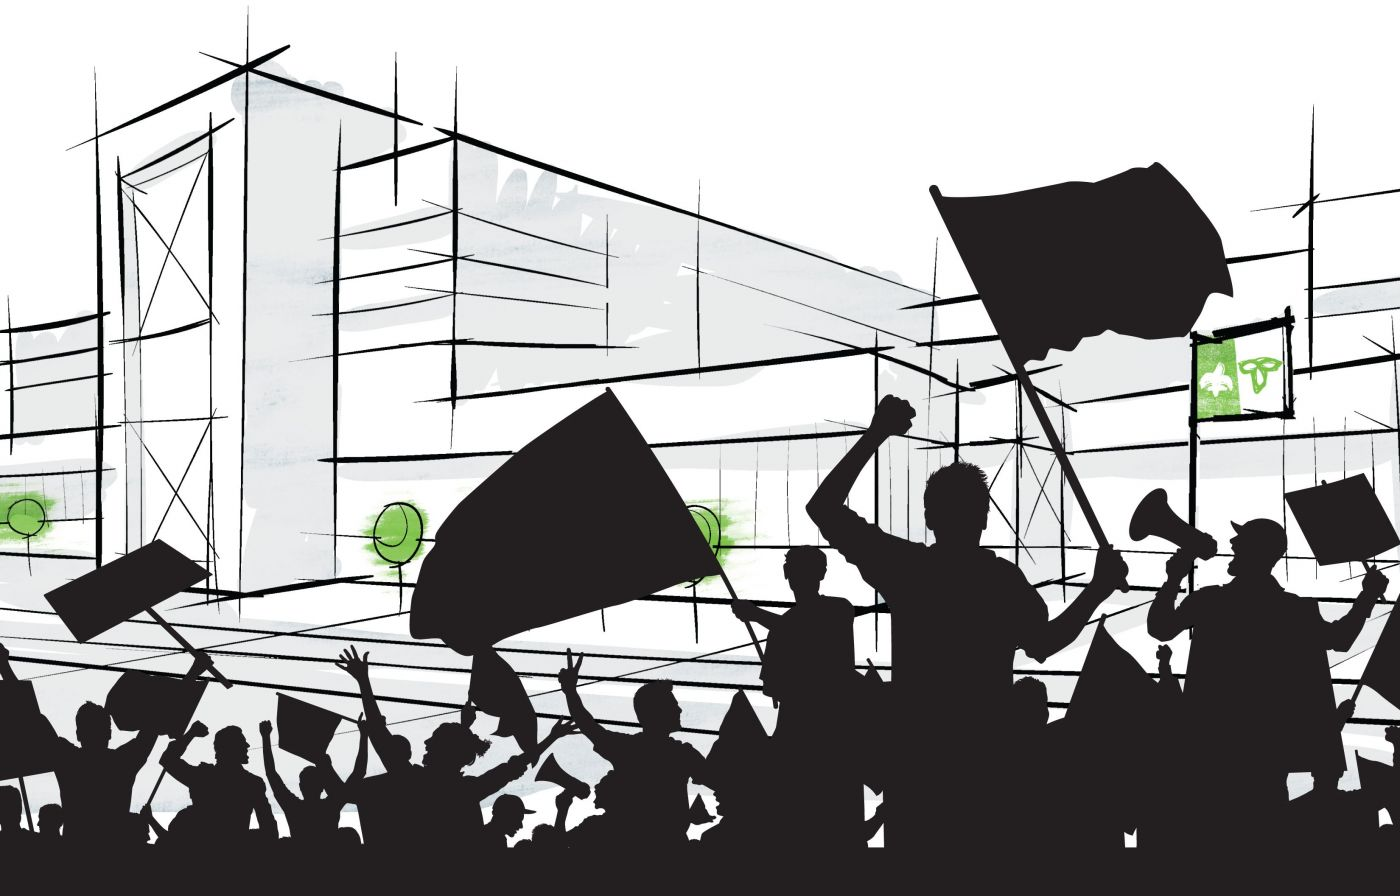 Colour drawing of a crowd demonstrating with flags, placards and megaphones. The figures, seen from behind, appear in black silhouette in front of a stylized building with a Franco-Ontarian flag and balloons in green.